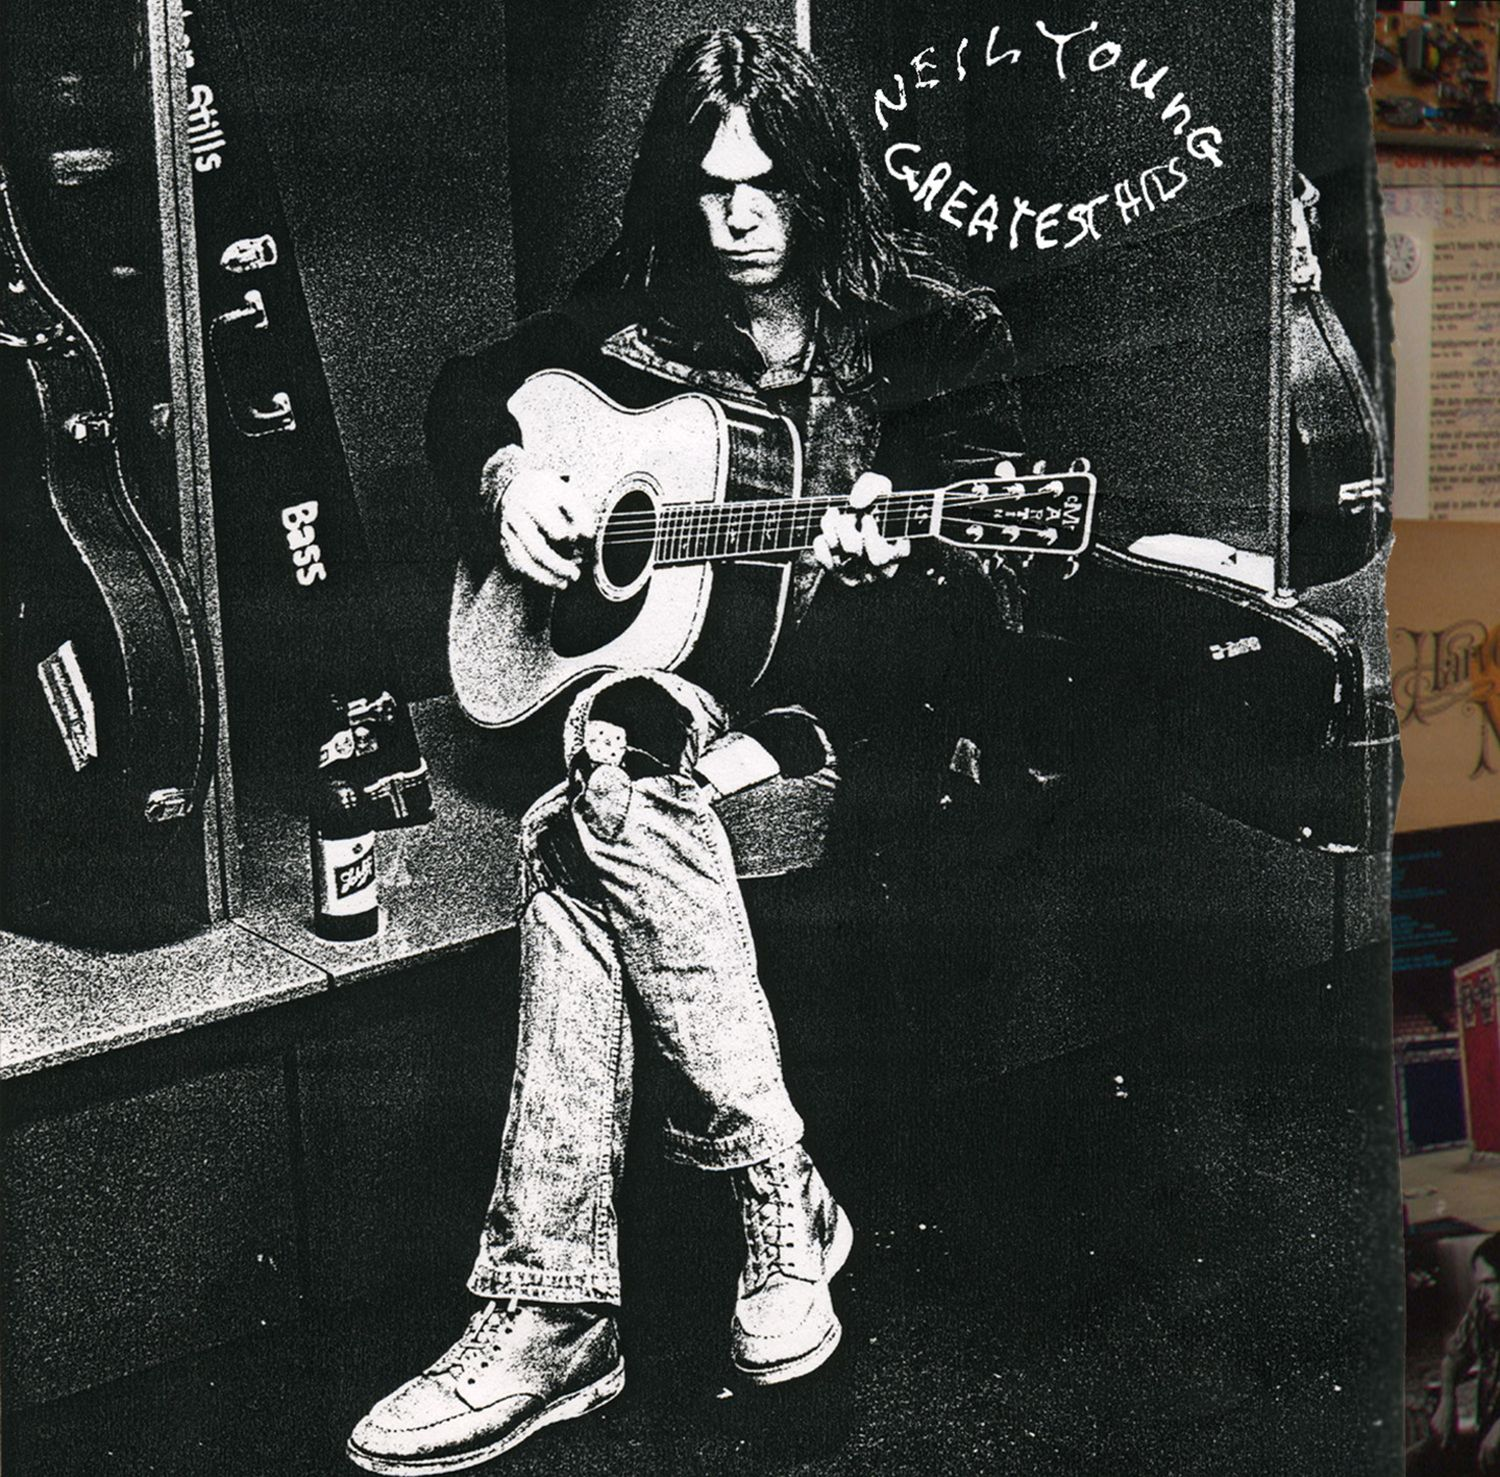 Mp3 Young Down: Download Neil Young , Greatest Hits MP3